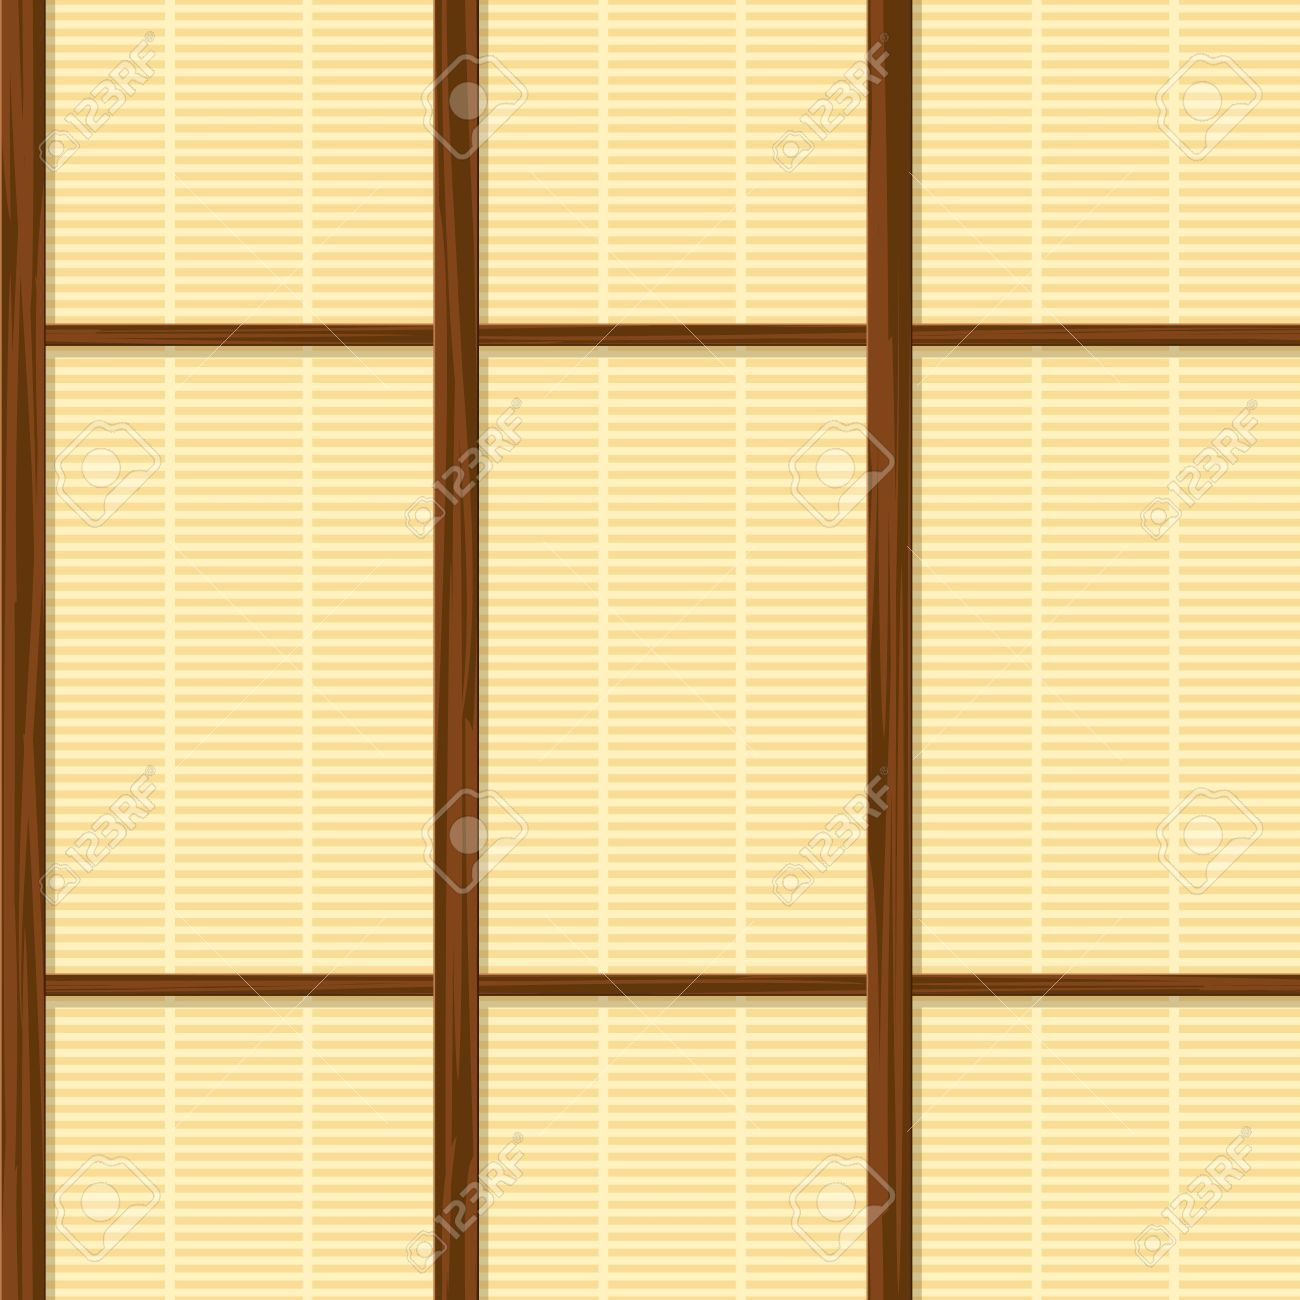 12494766-seamless-japan-paper-frame-house-wall-texture ...